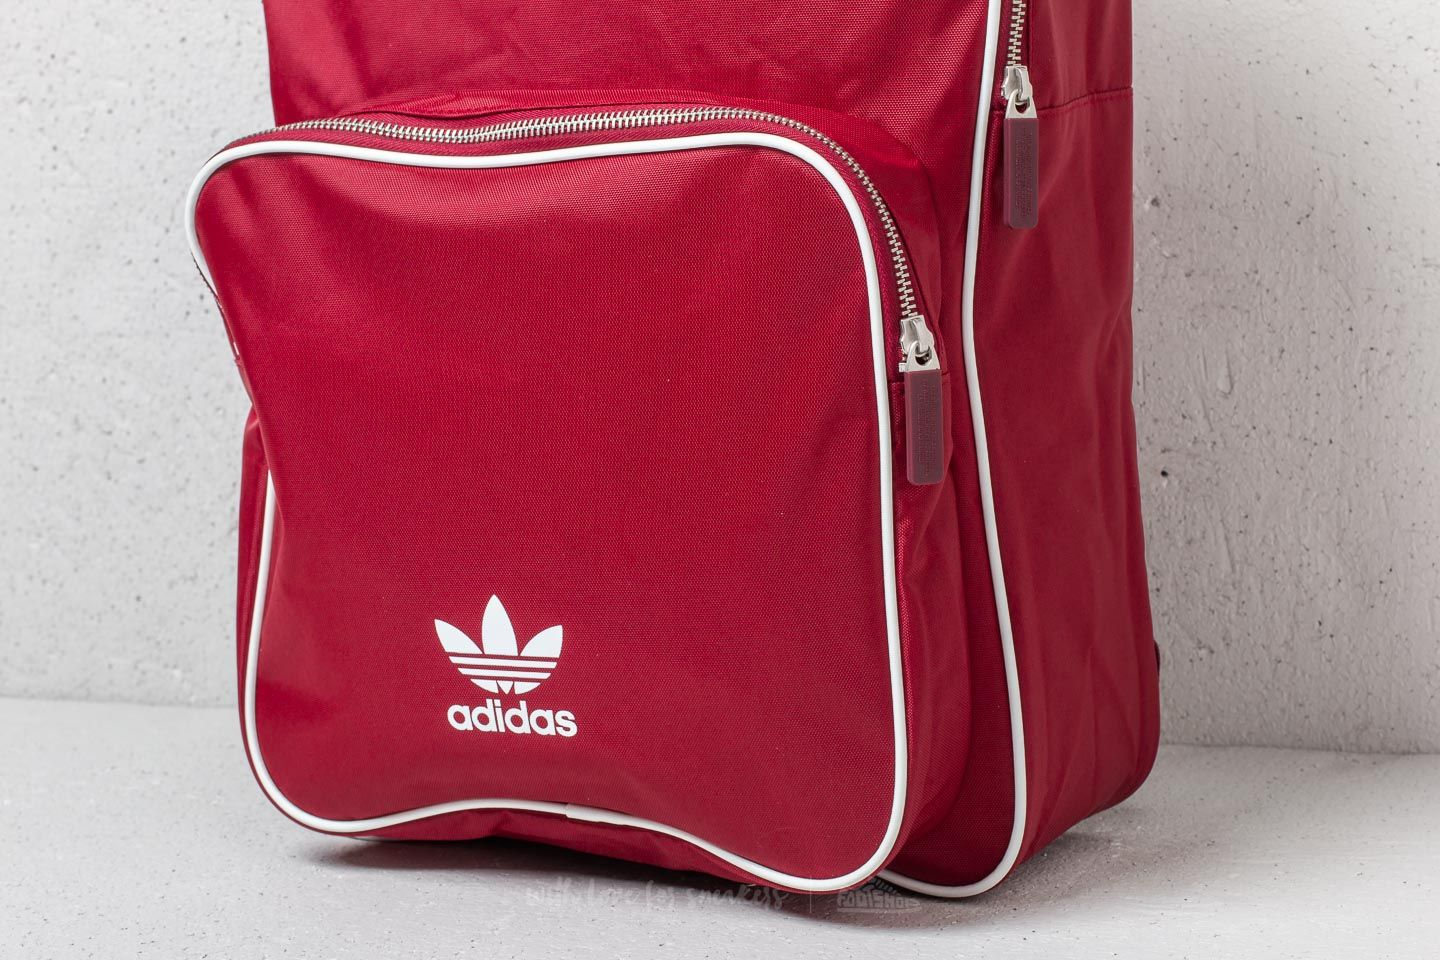 5728644c035afa Adidas Classic Backpack Burgundy | Building Materials Bargain Center